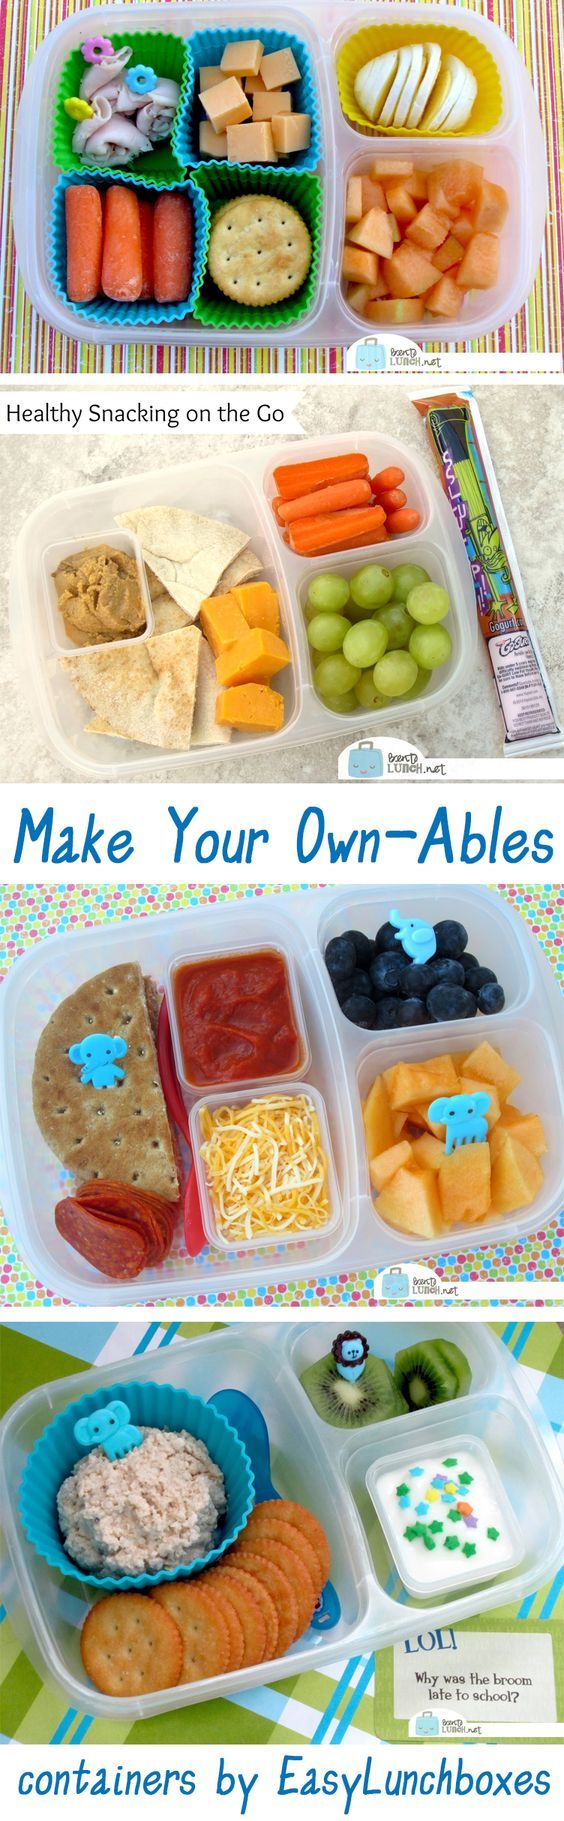 Make your own able lunches almuerzos meriendas y for Ideas para almuerzos caseros